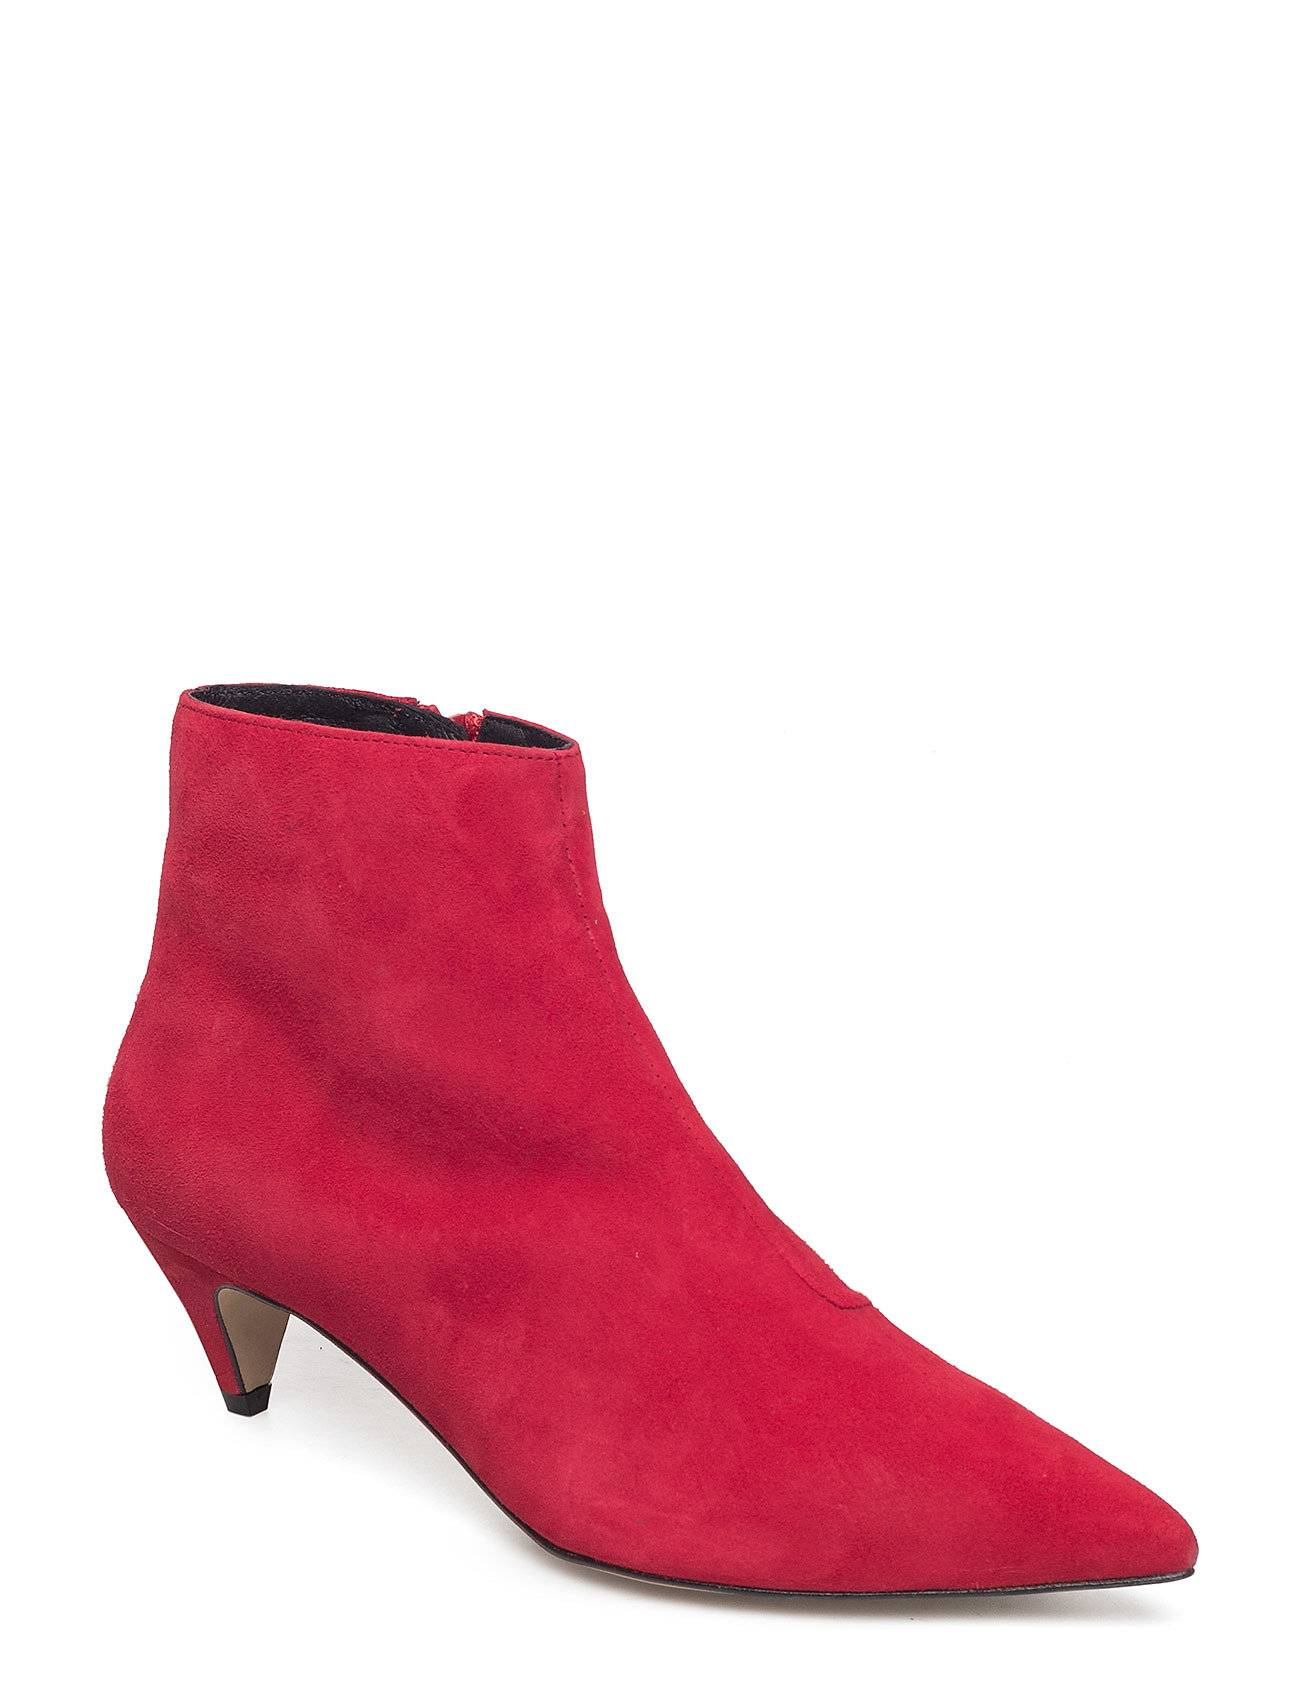 Henry Kole Alessa Shoes Boots Ankle Boots Ankle Boots With Heel Punainen Henry Kole